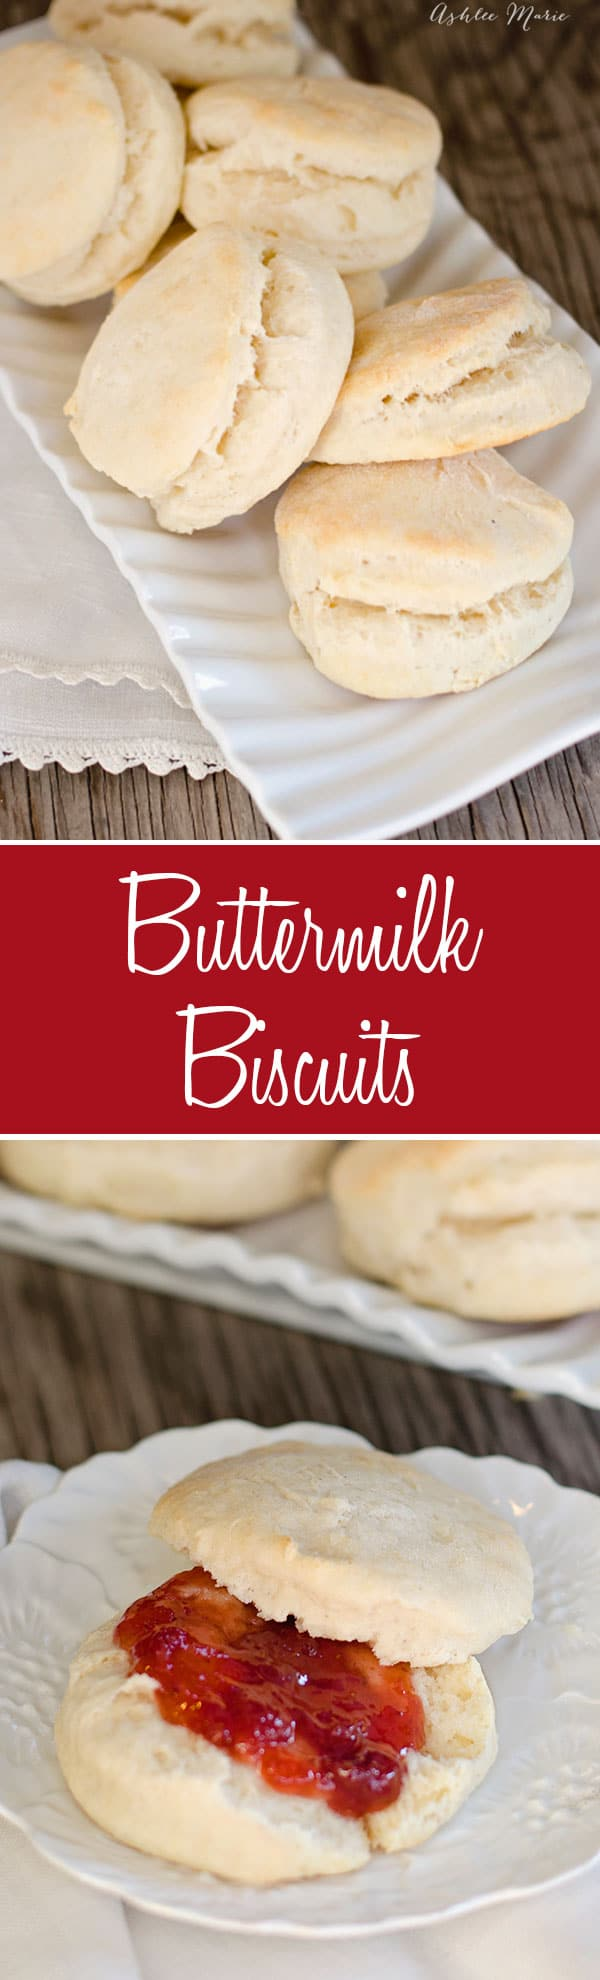 easy buttermilk biscuit recipe, perfect with jelly, jam and gravy